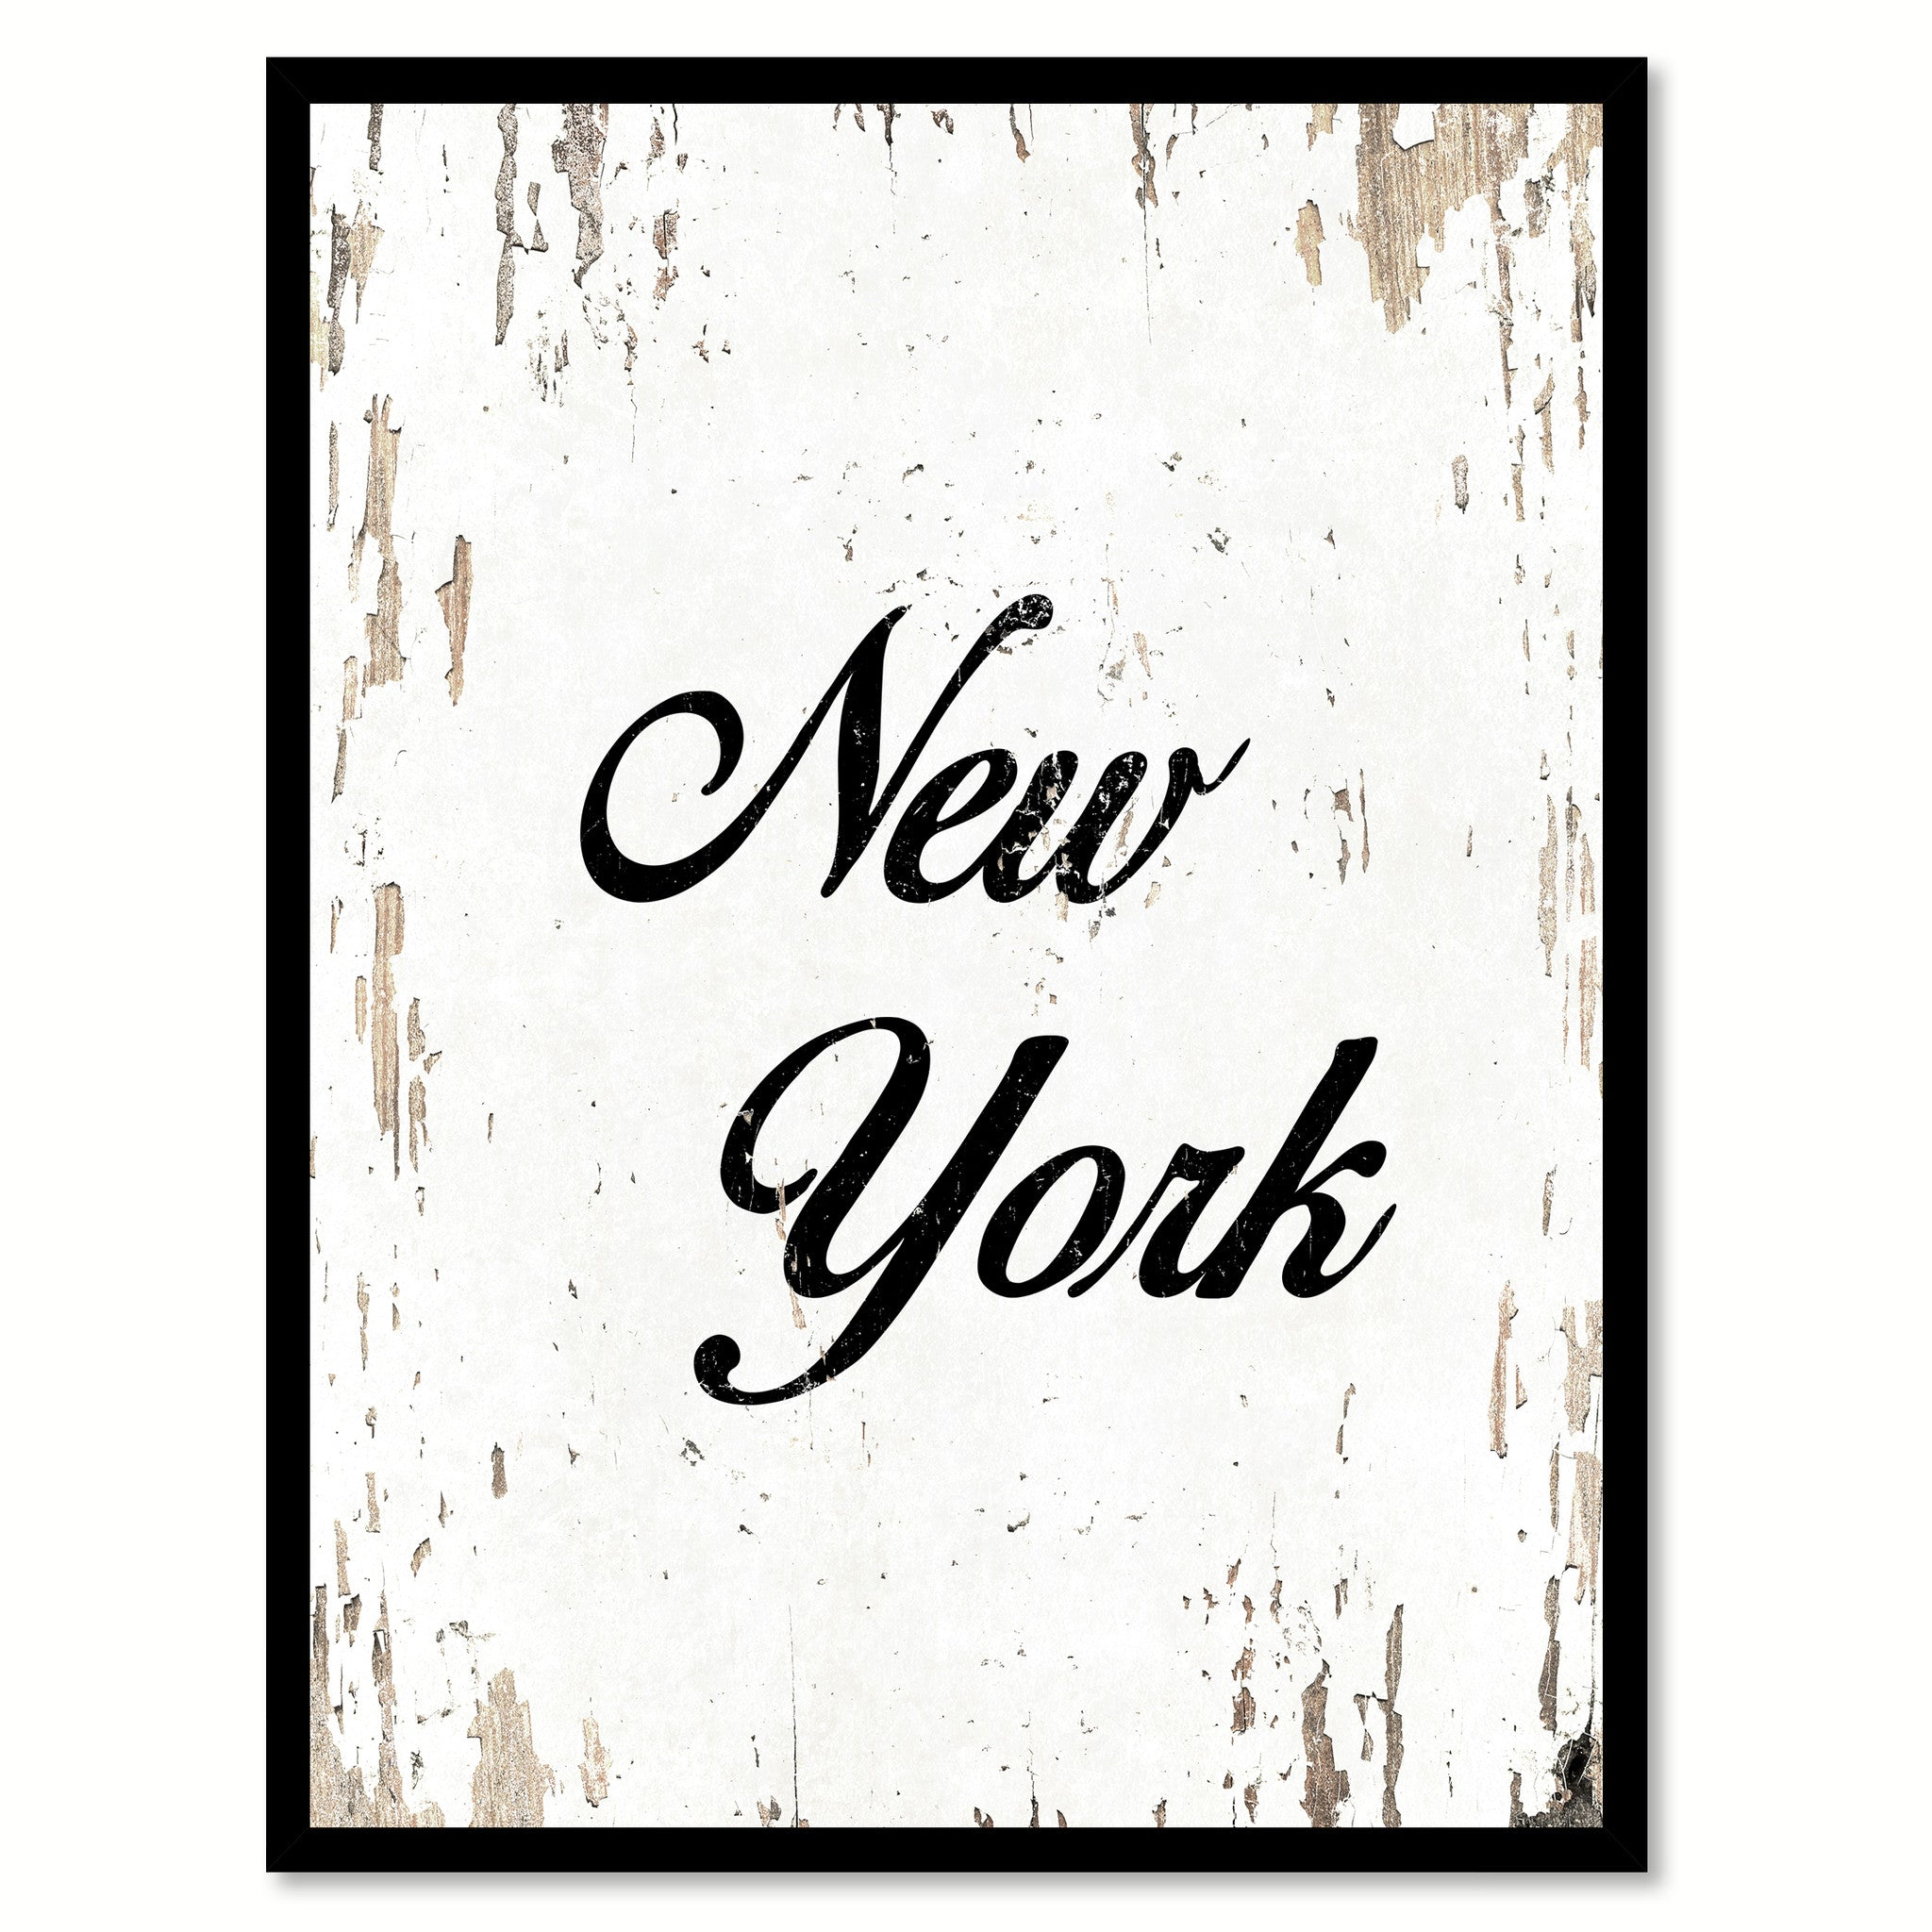 New York City Vintage Canvas Print with Black Picture Frame Home Decor Wall Art Collectibla Decoration Artwork Gifts